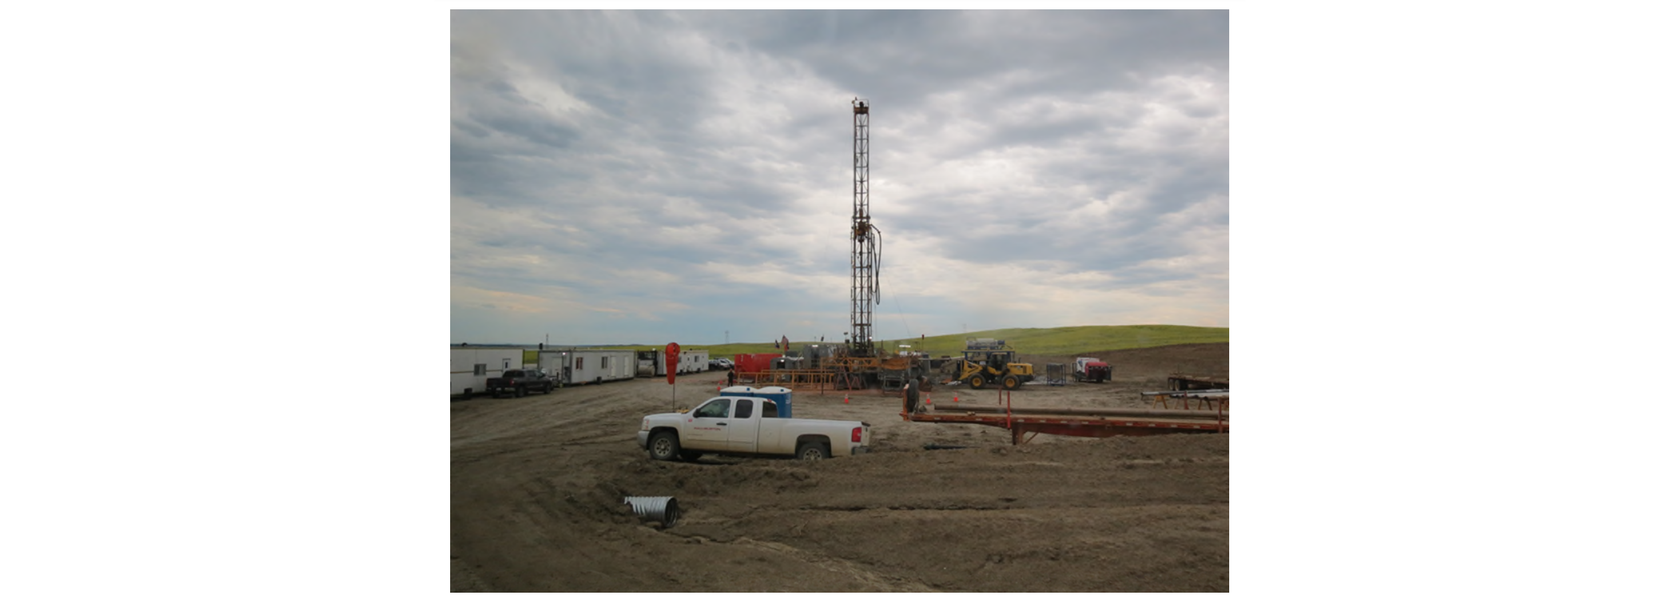 Eon NRG set to drill Powder River well